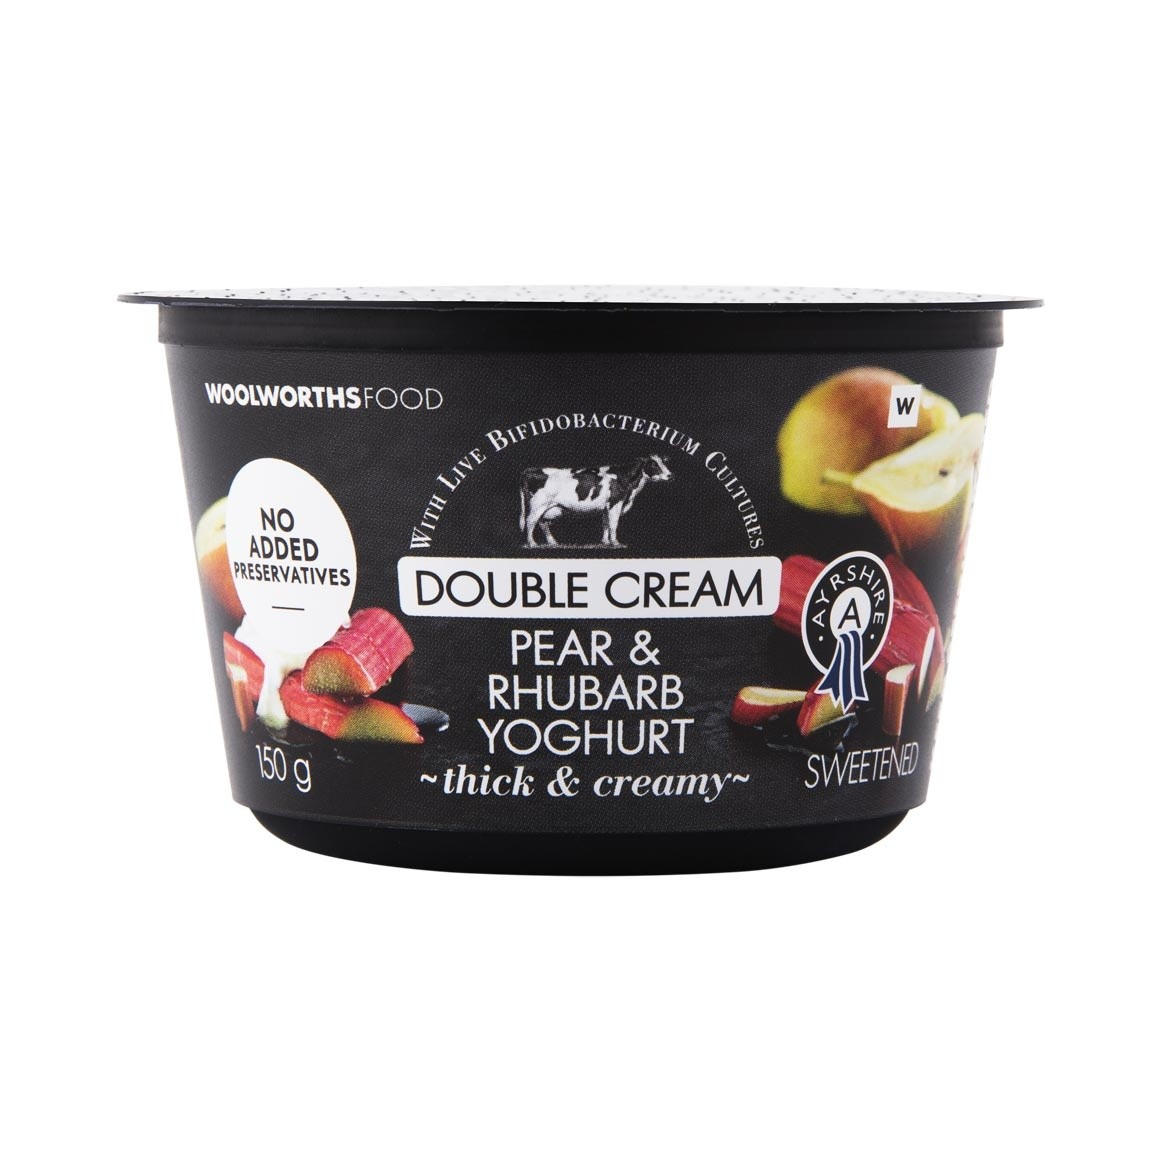 Double-Cream-Ayrshire-Pear-Rhubarb-Yoghurt-150g-6009195999391